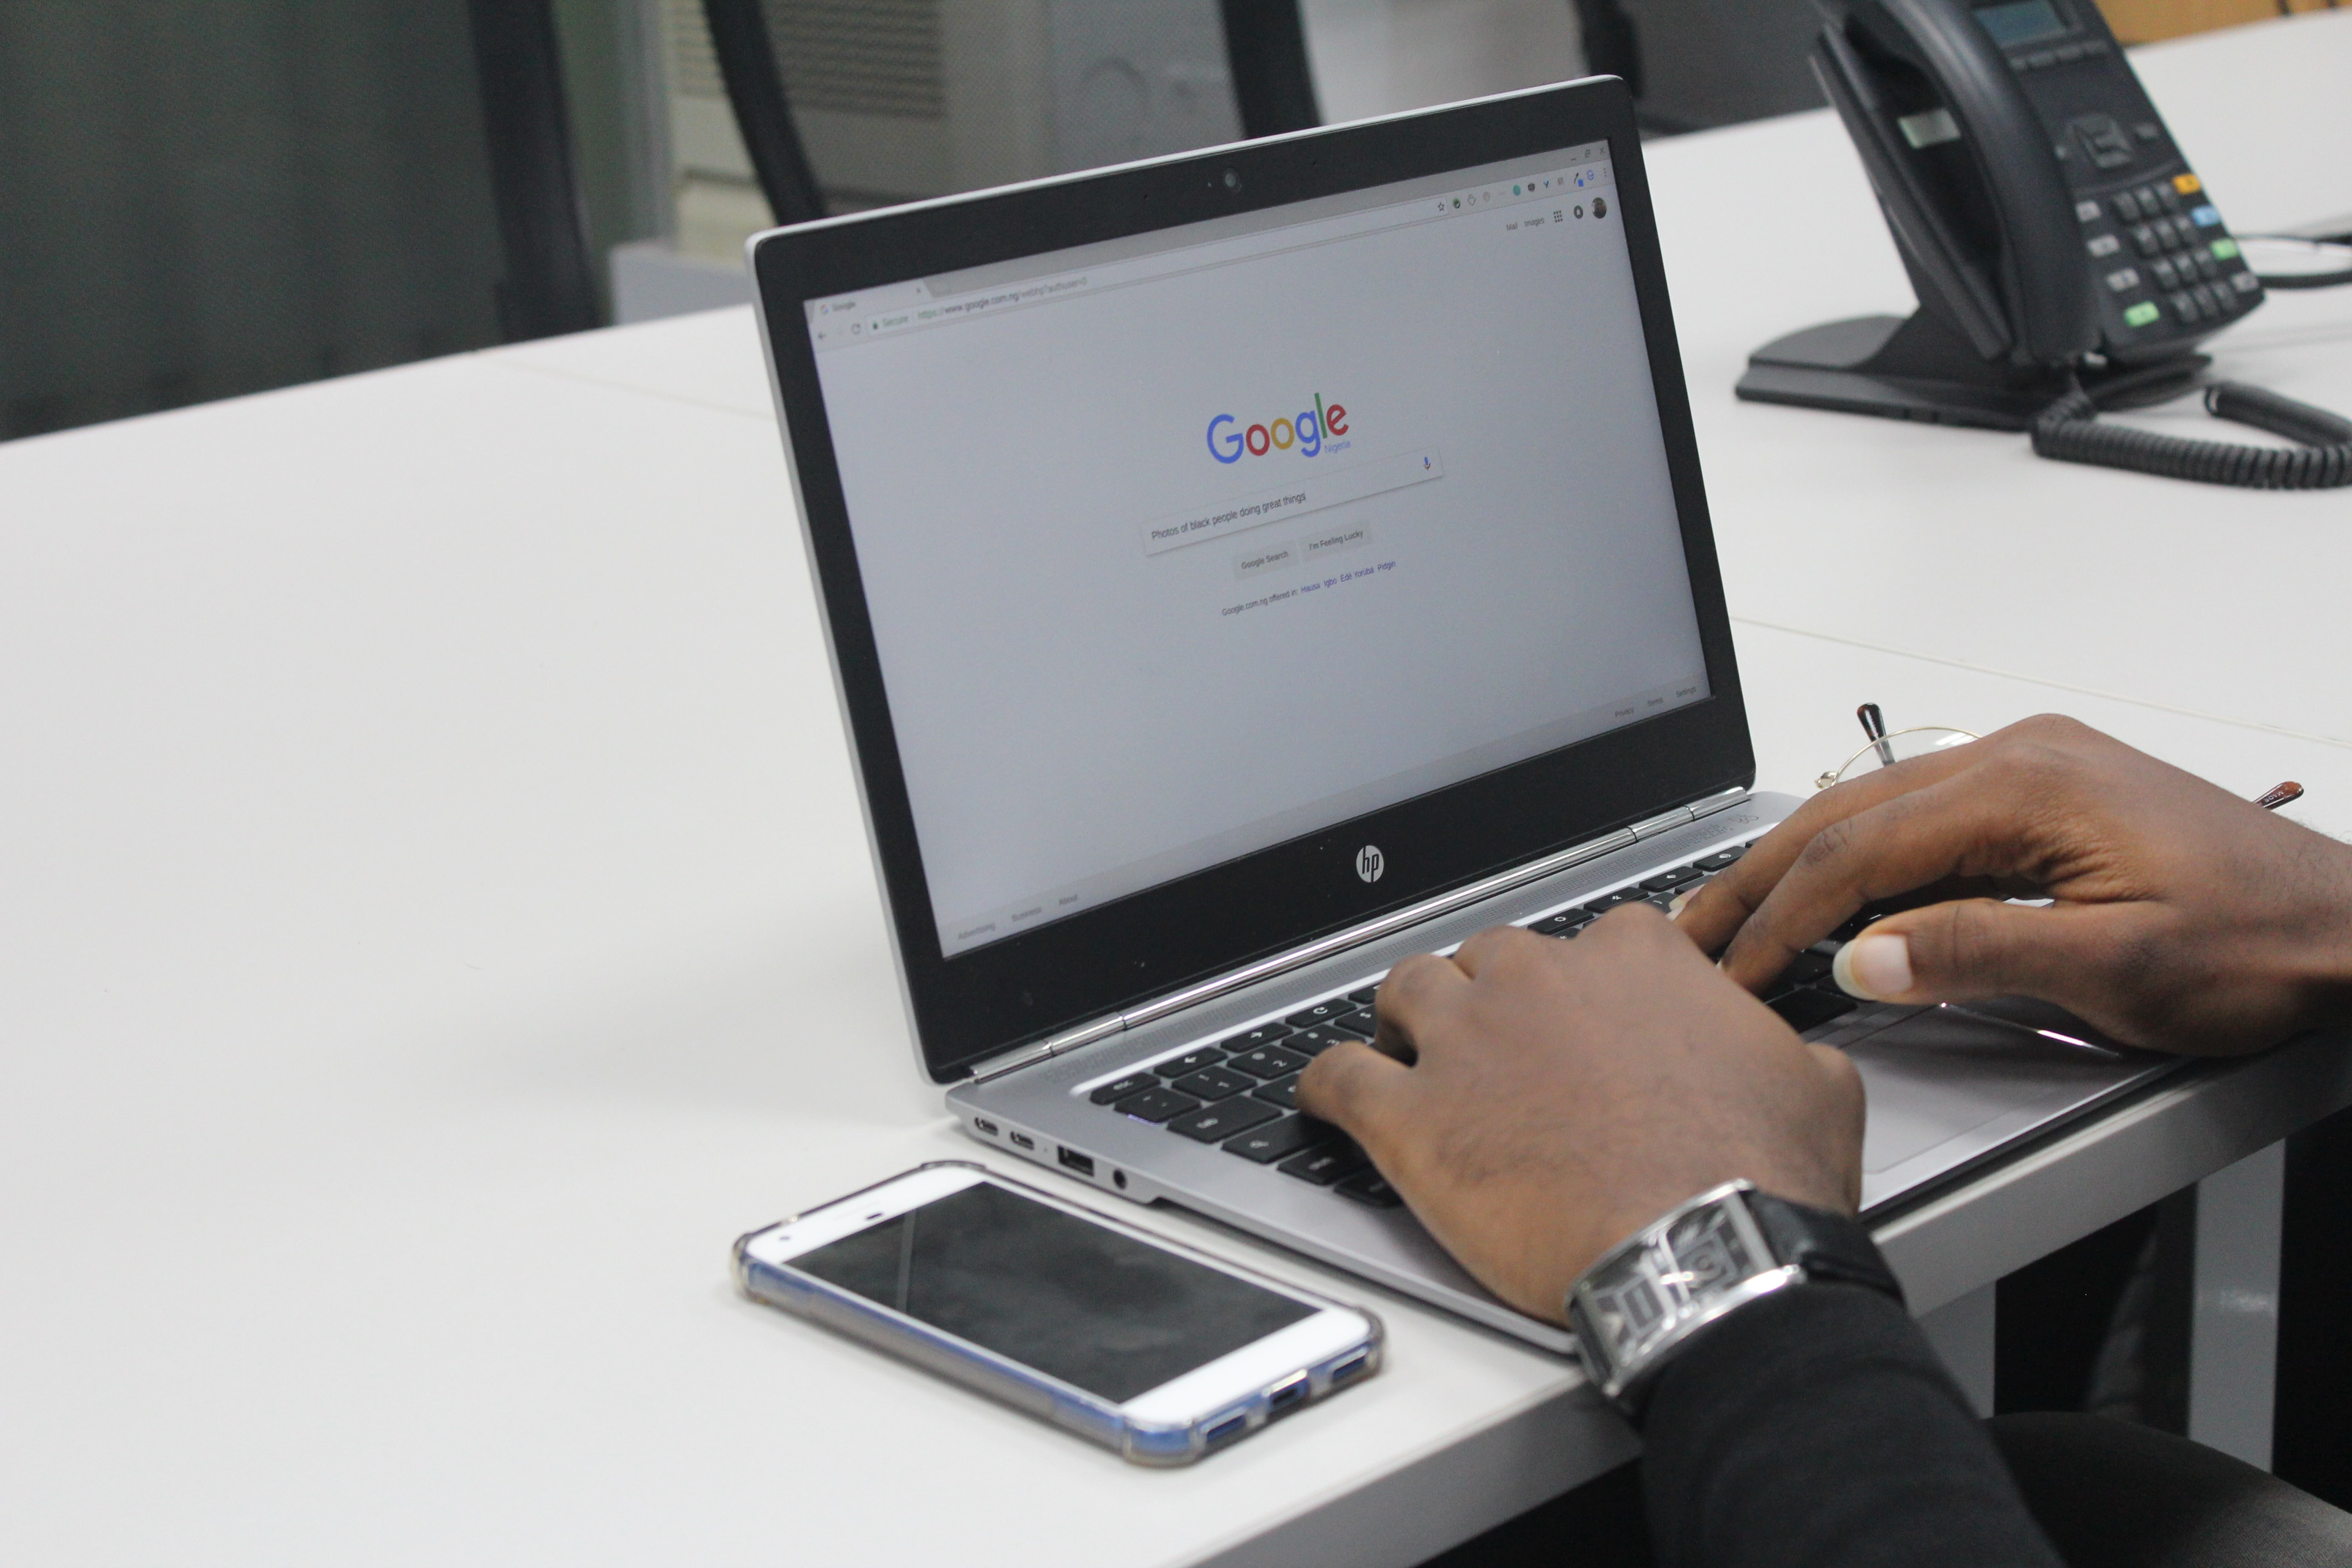 Person with watch using laptop computer and Google search engine with iPhone on table